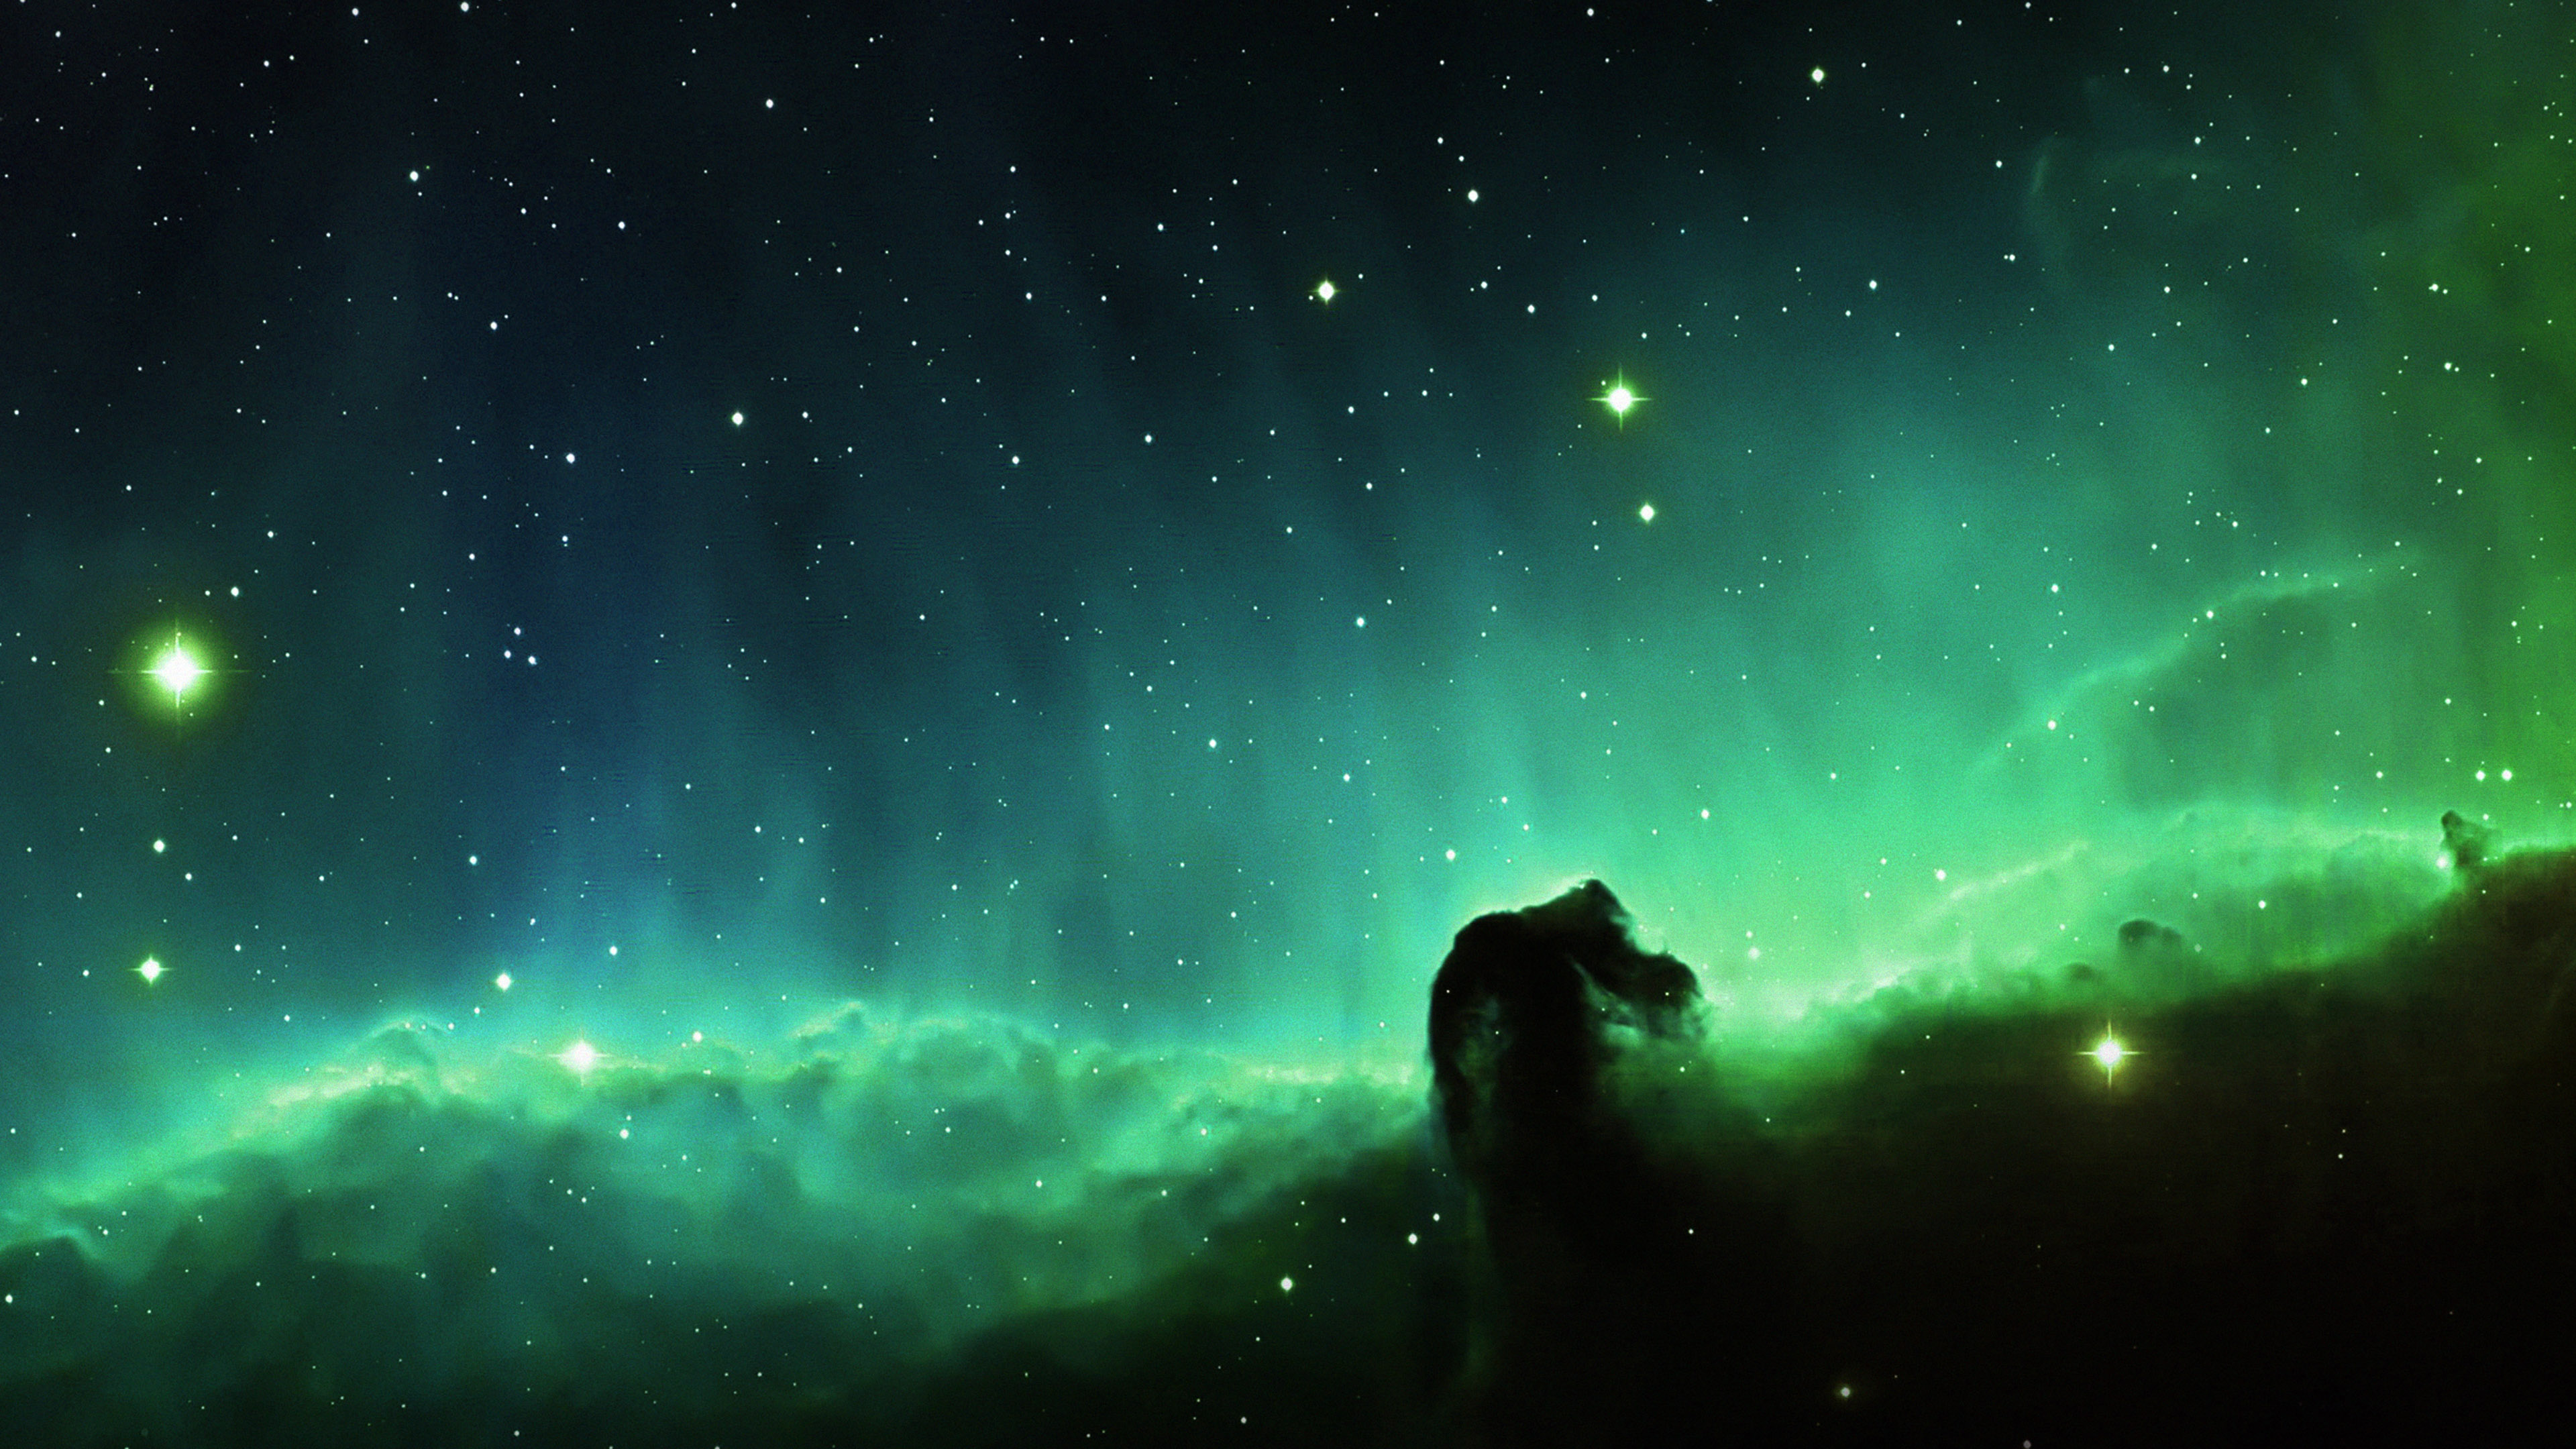 Fall Live Wallpaper Iphone Mj11 Horse Head Blue Nebula Sky Space Stars Papers Co